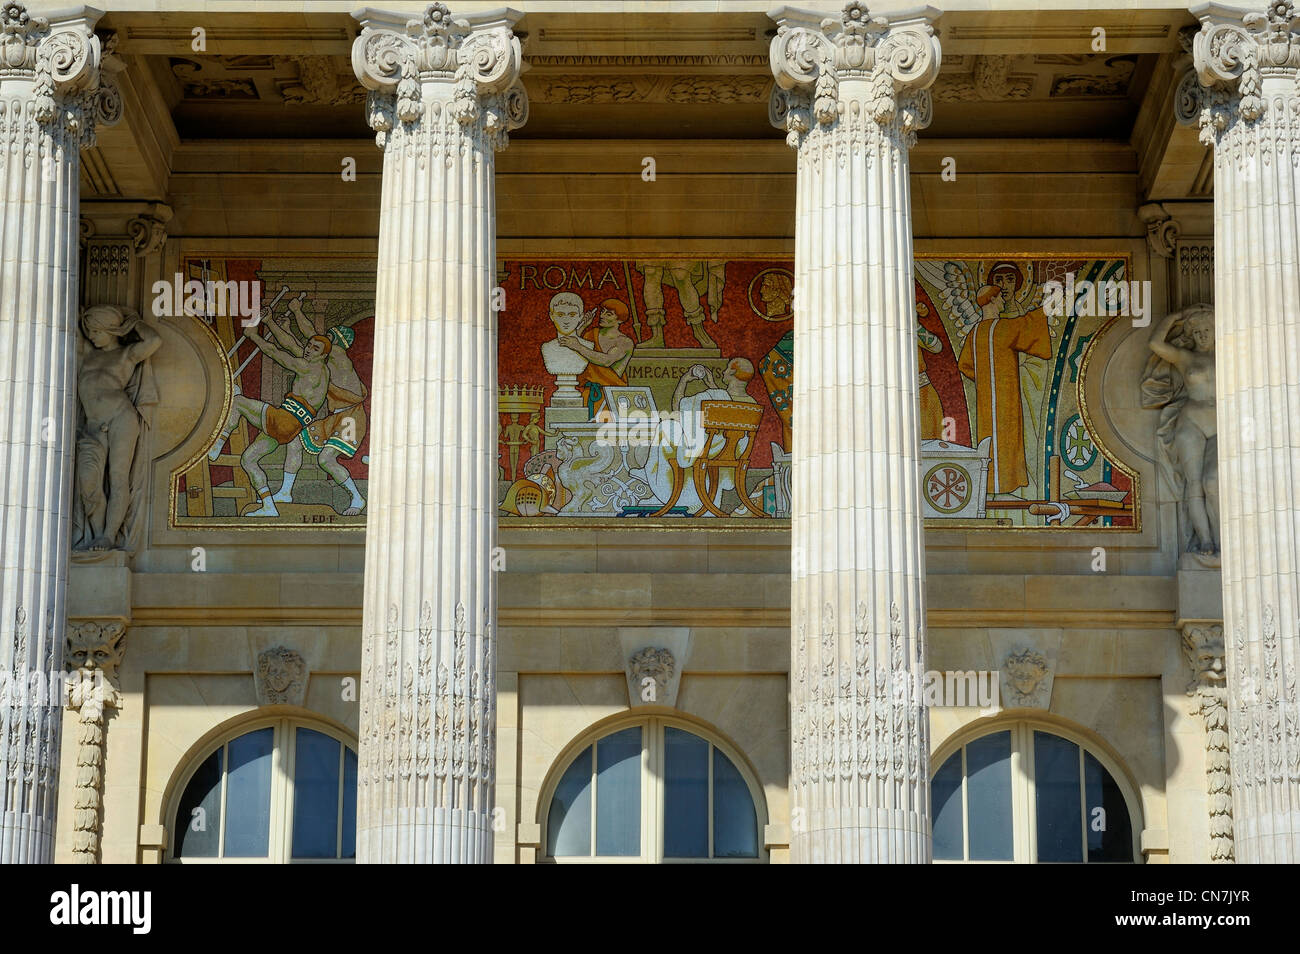 France, Paris, Grand Palais, detail of inside friezes of the peristyle of the main facade designed by Henri Deglane - Stock Image